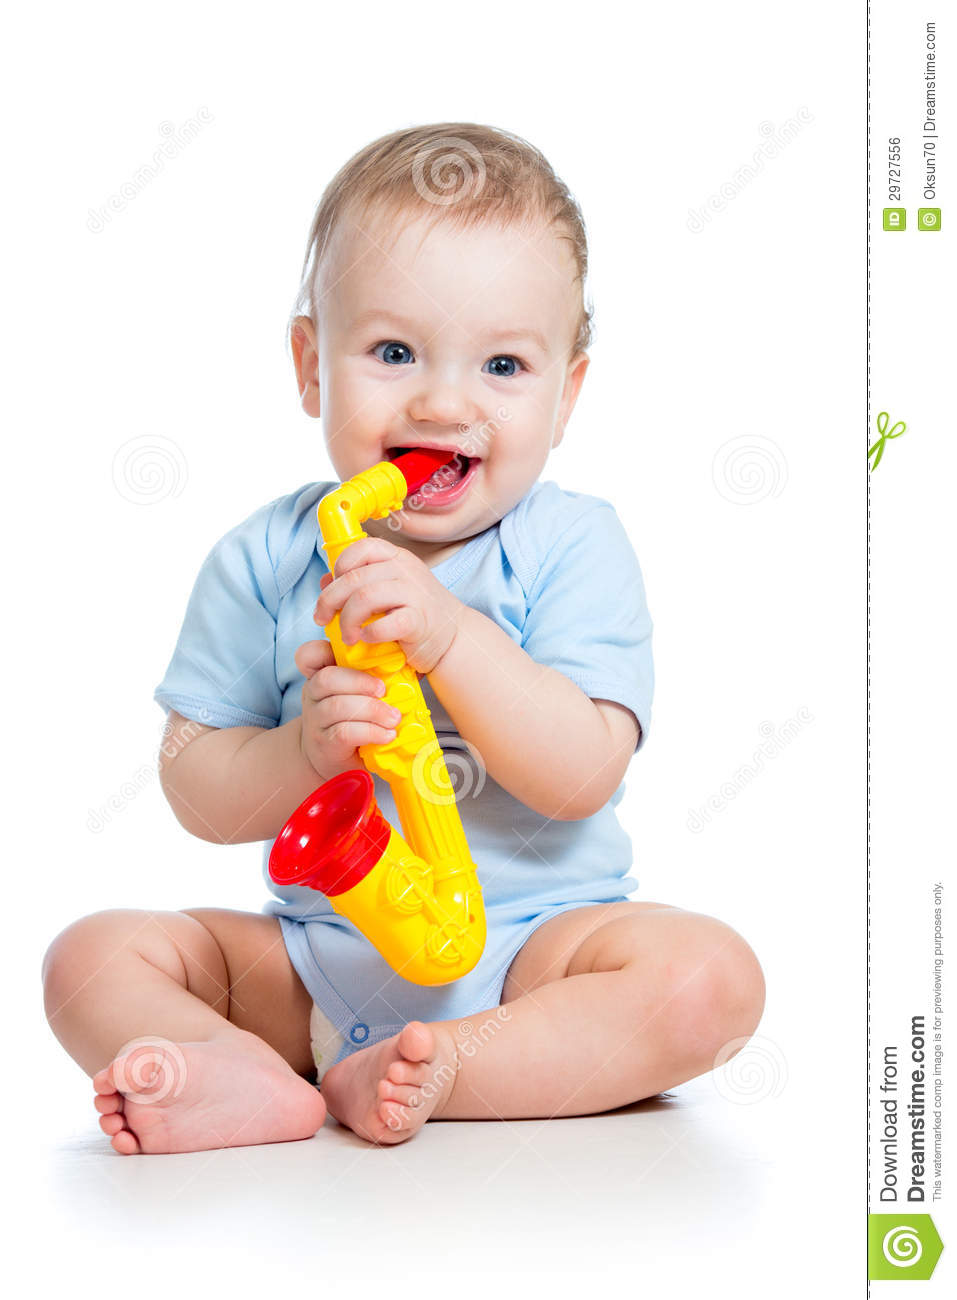 Boy Toys Background : Baby boy playing toy royalty free stock image